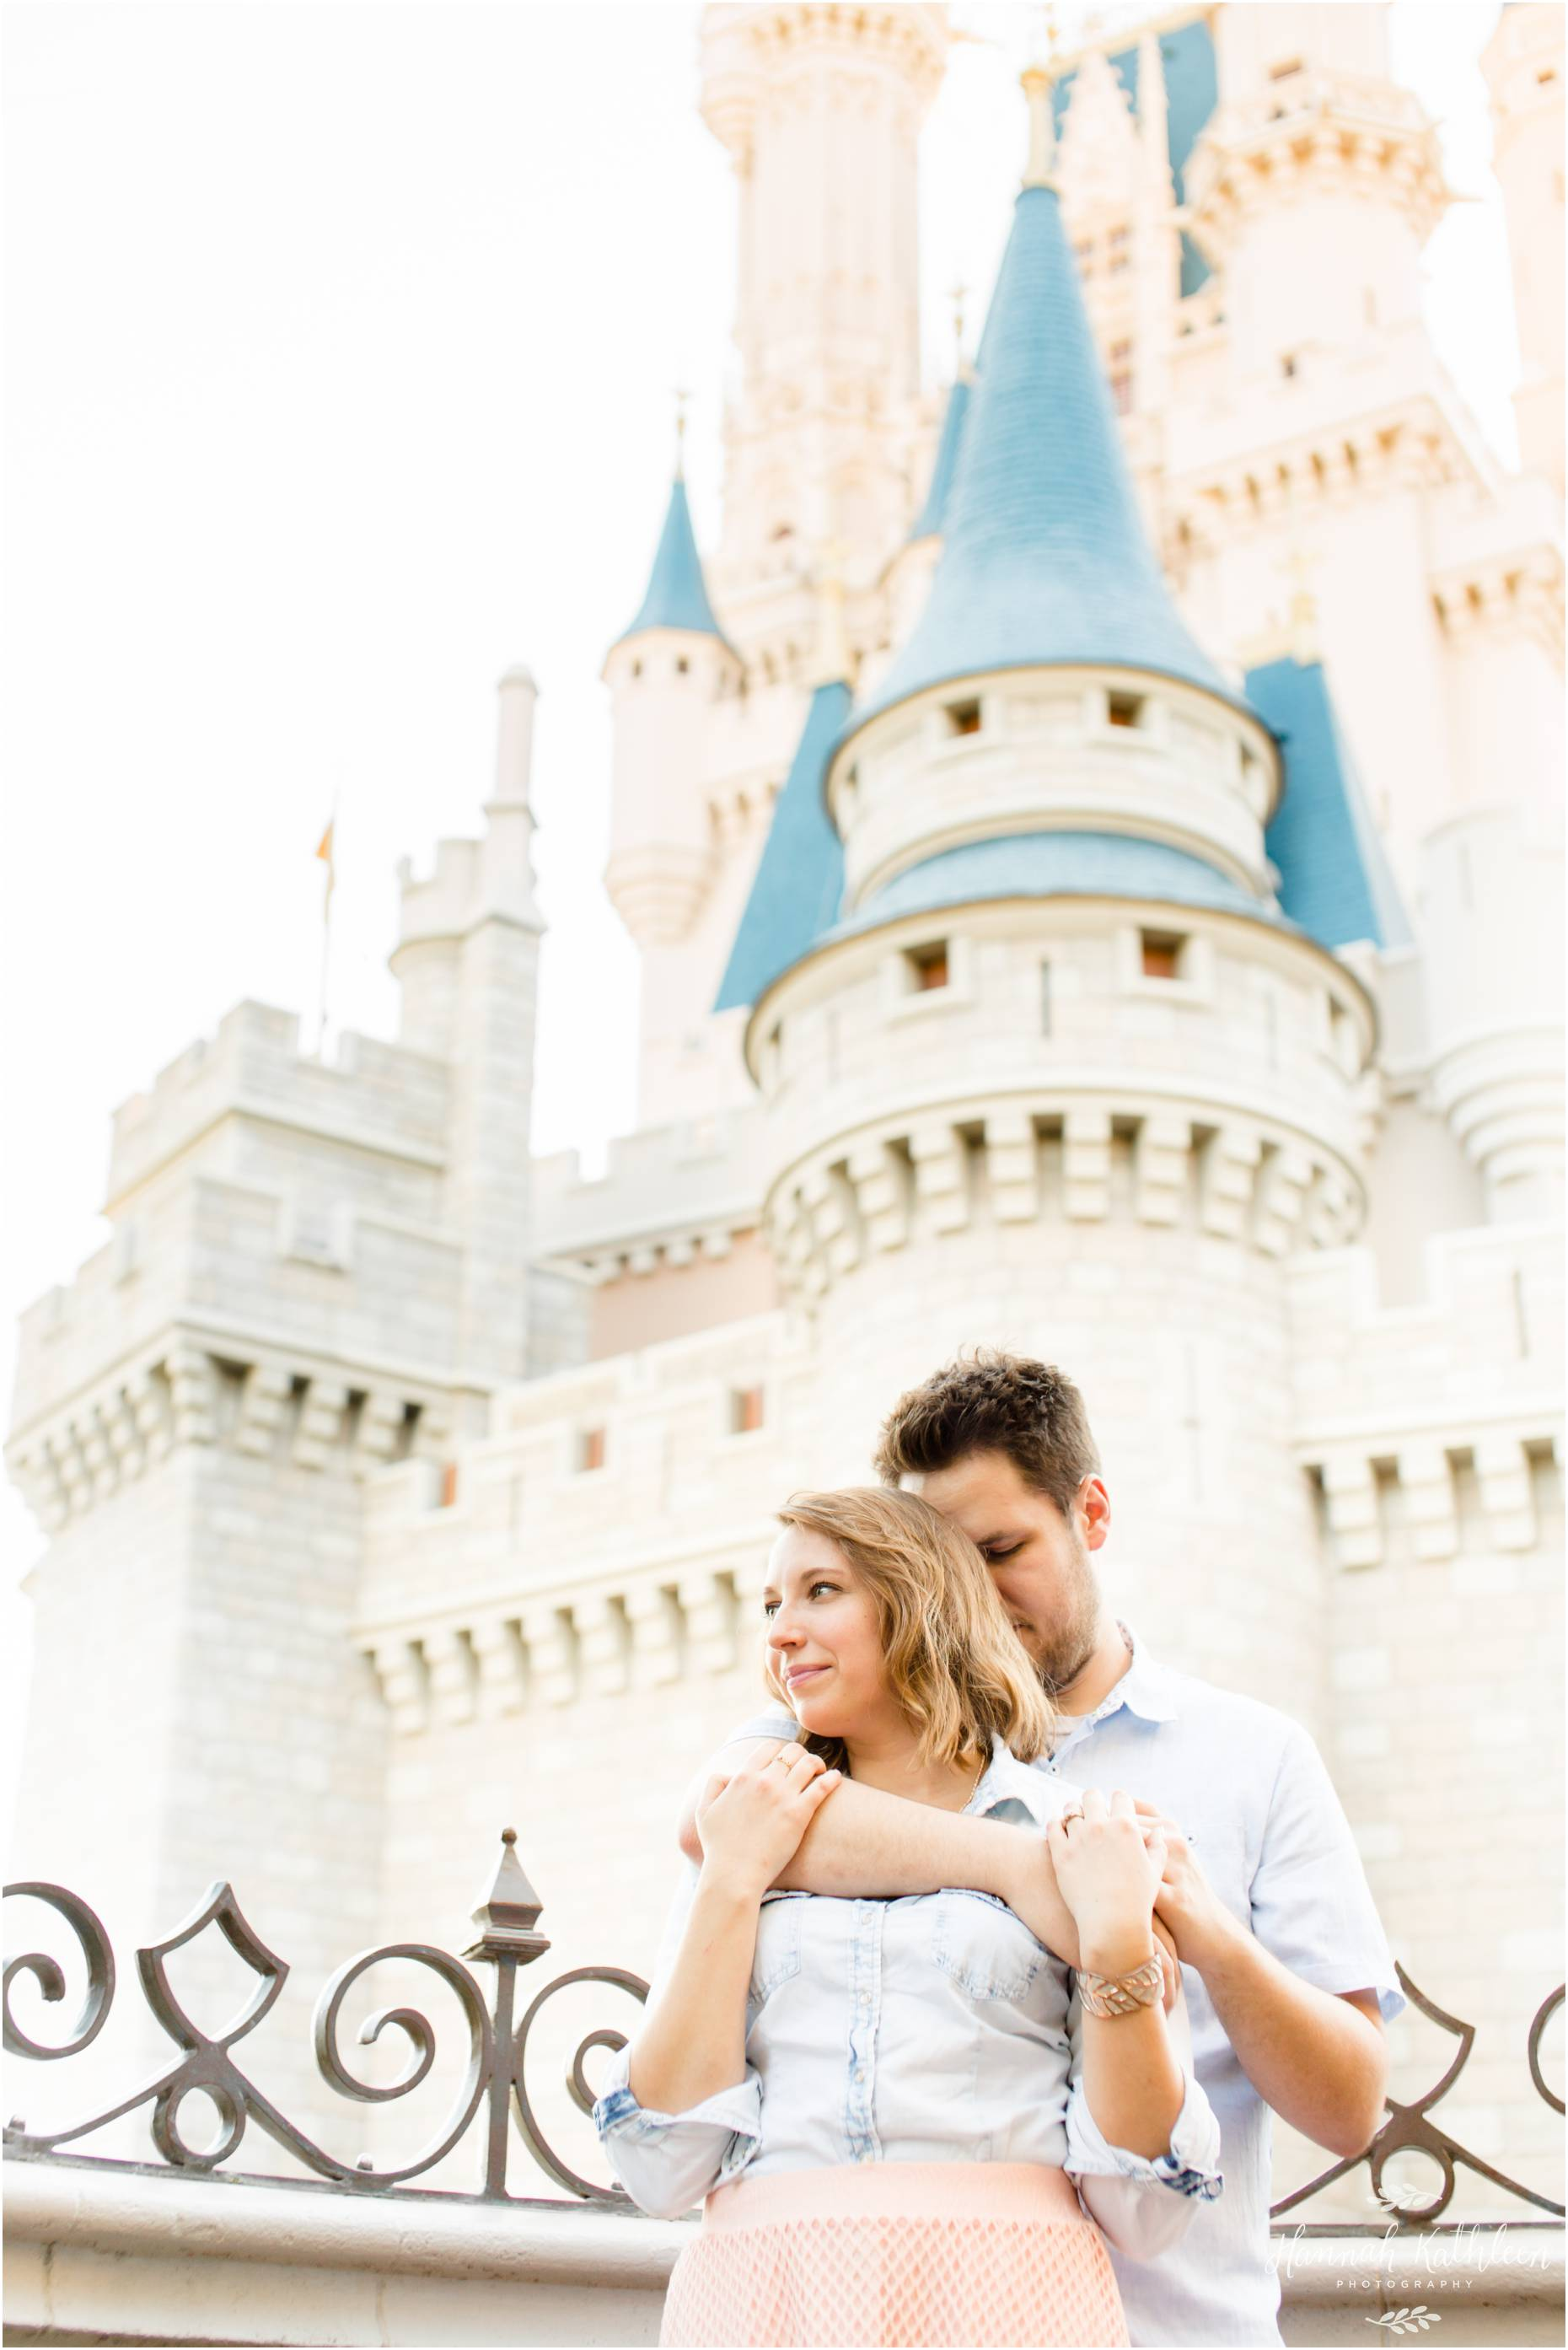 WhitneyCody_Disney_World_Photographer2.jpg